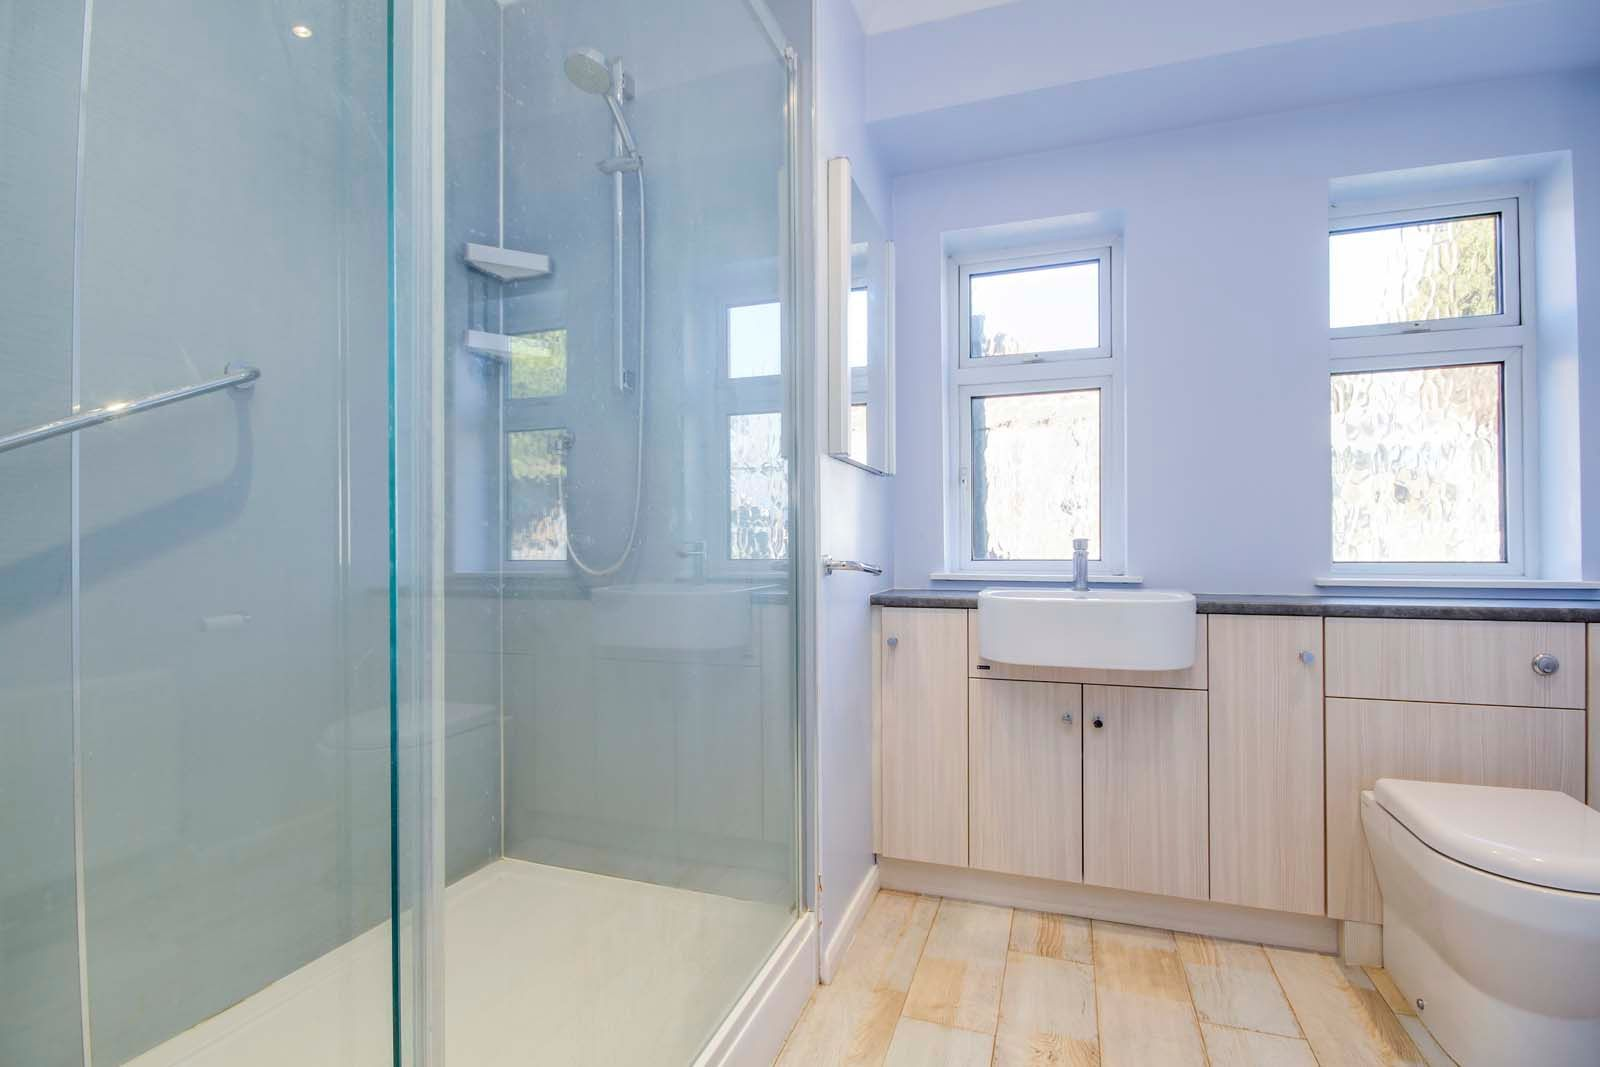 3 bed bungalow for sale in Sea Lane COMP MAY 19  - Property Image 9